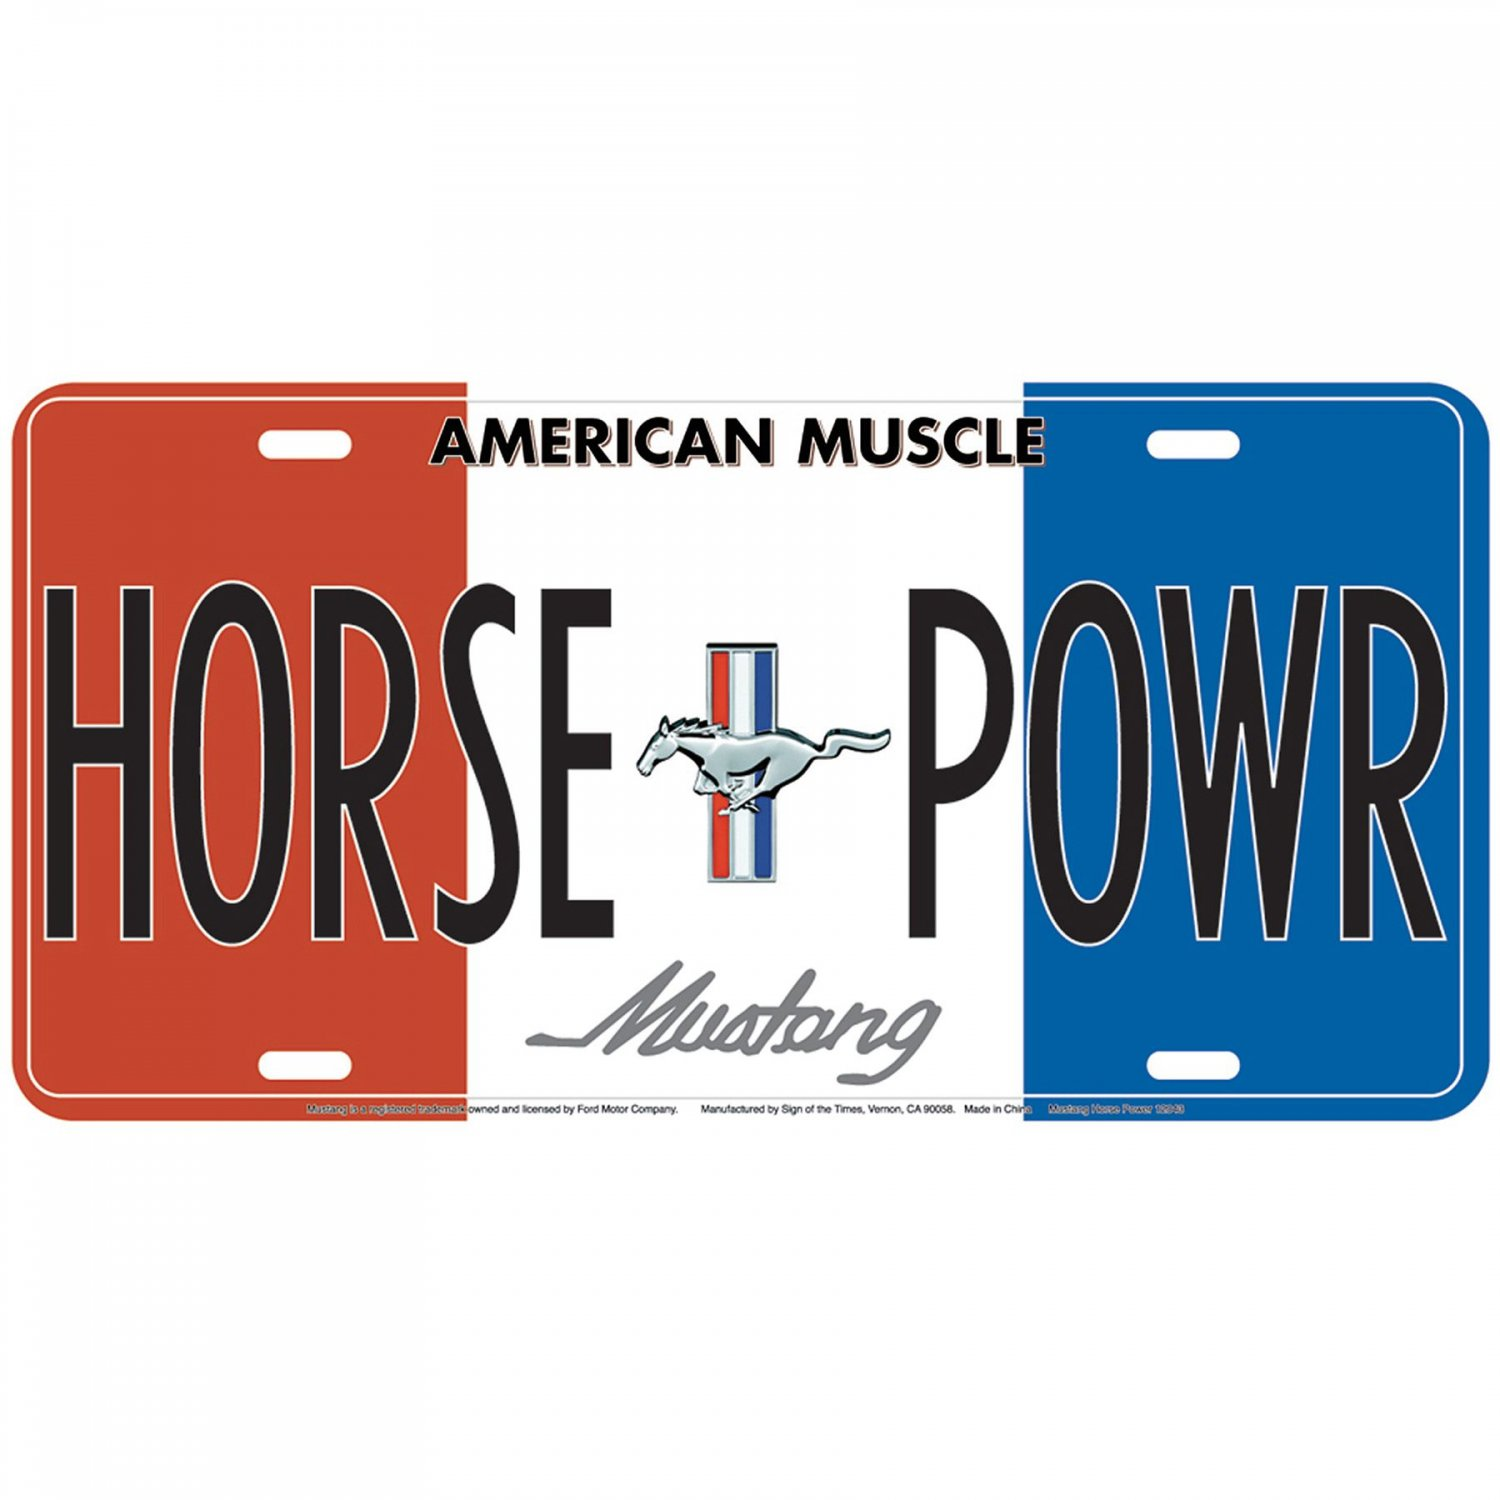 Ford Mustang Horse Power Metal License Plate